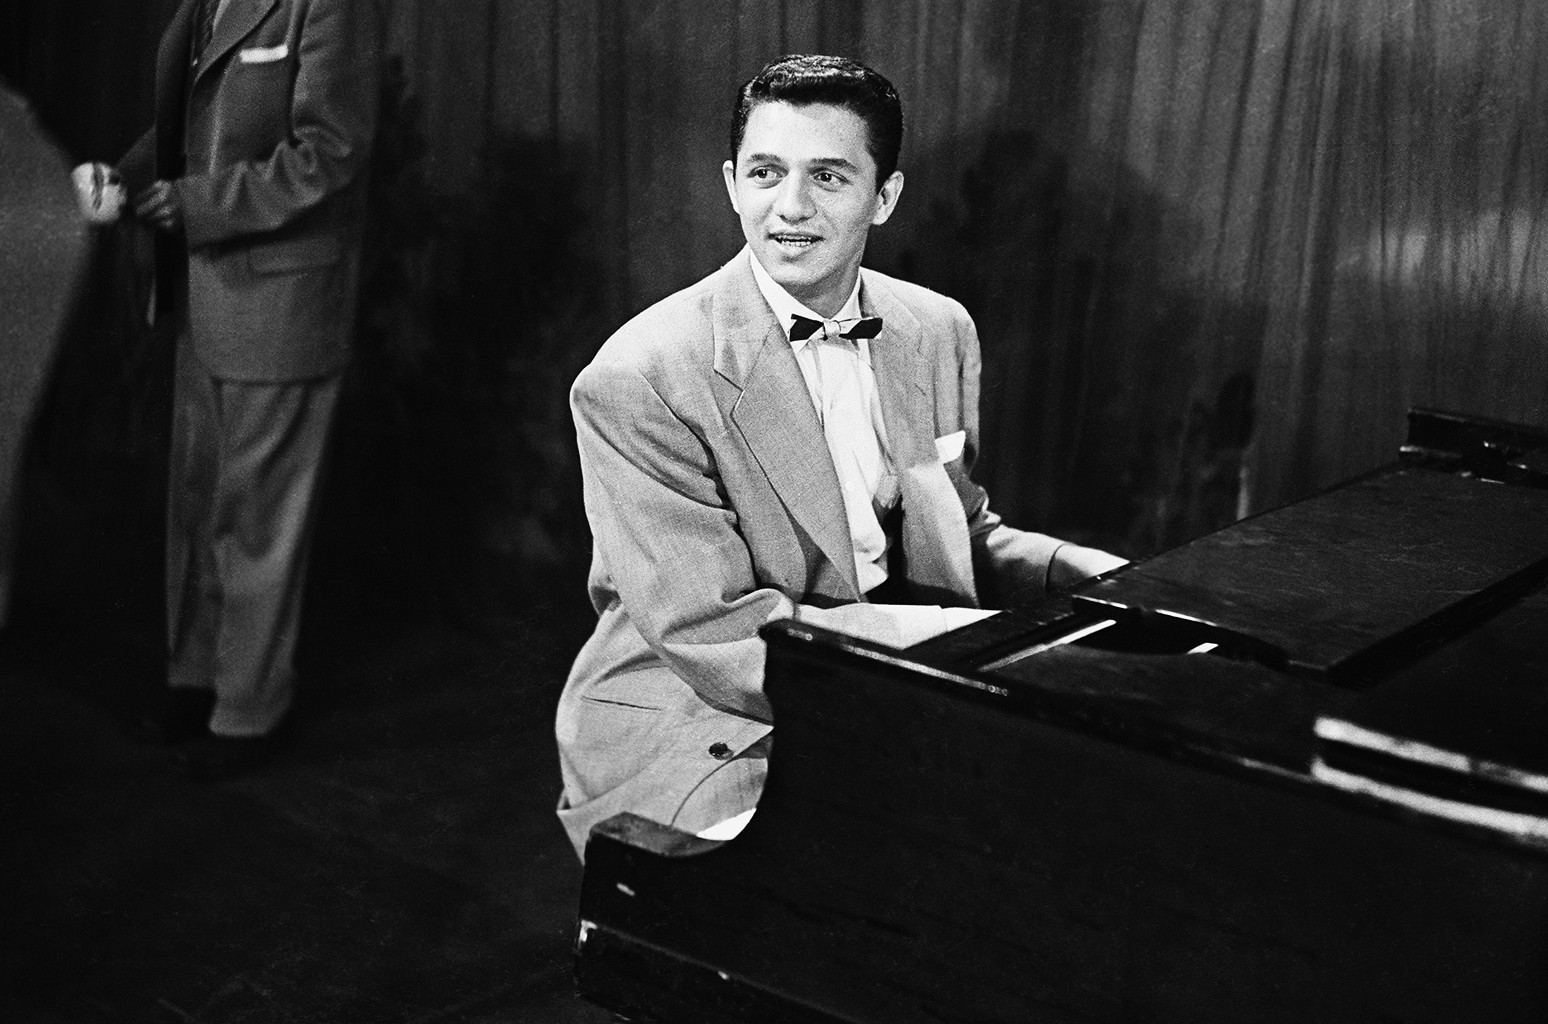 Buddy Greco photographed in 1951.